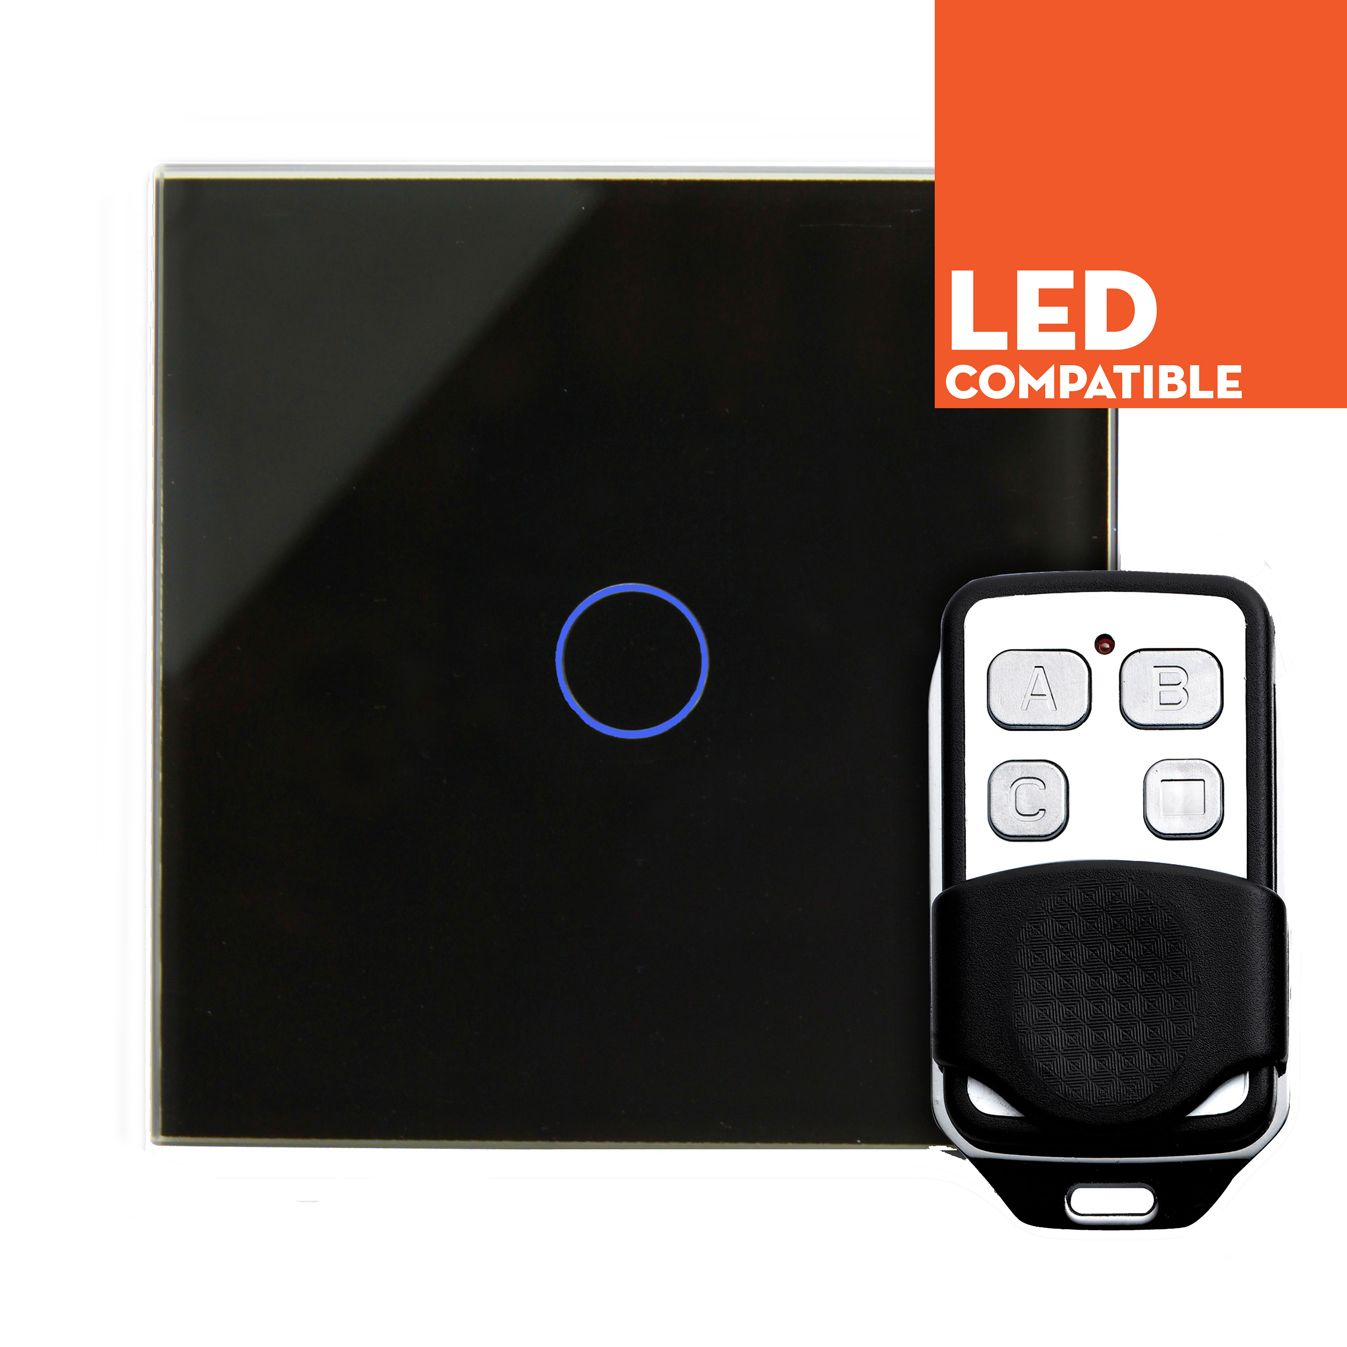 RTS2040DL LED Dimmer Touch & Remote Light Switch 1 Gang Black Glass ...